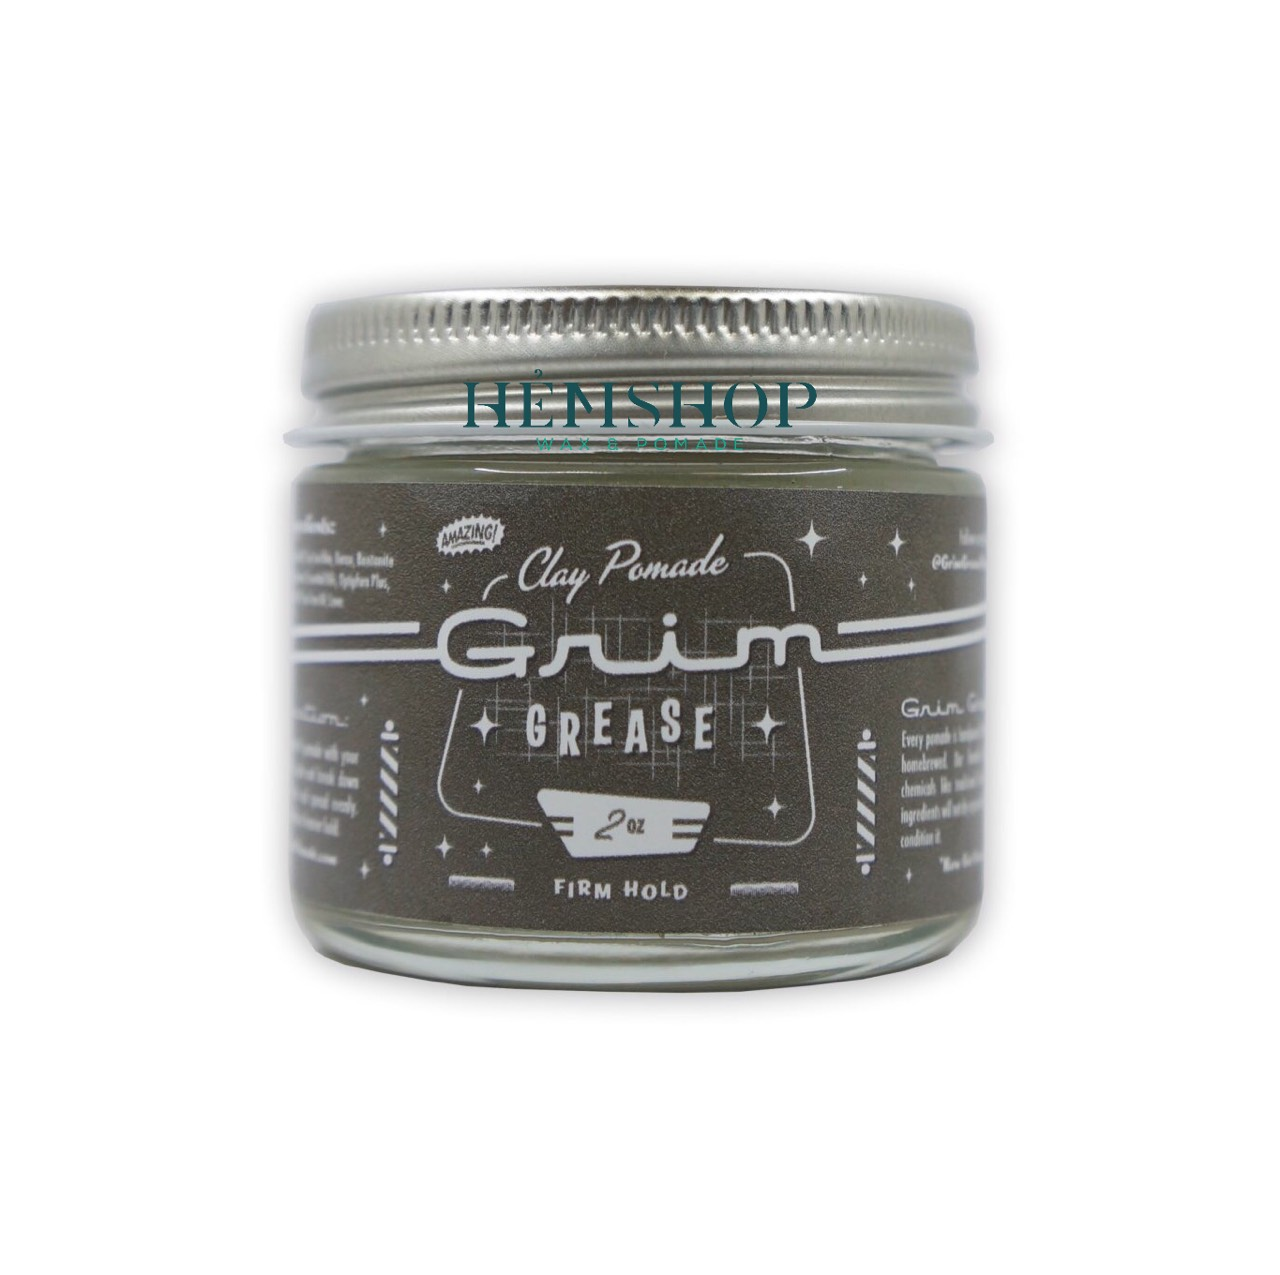 Grim Grease Clay Pomade 2.oz